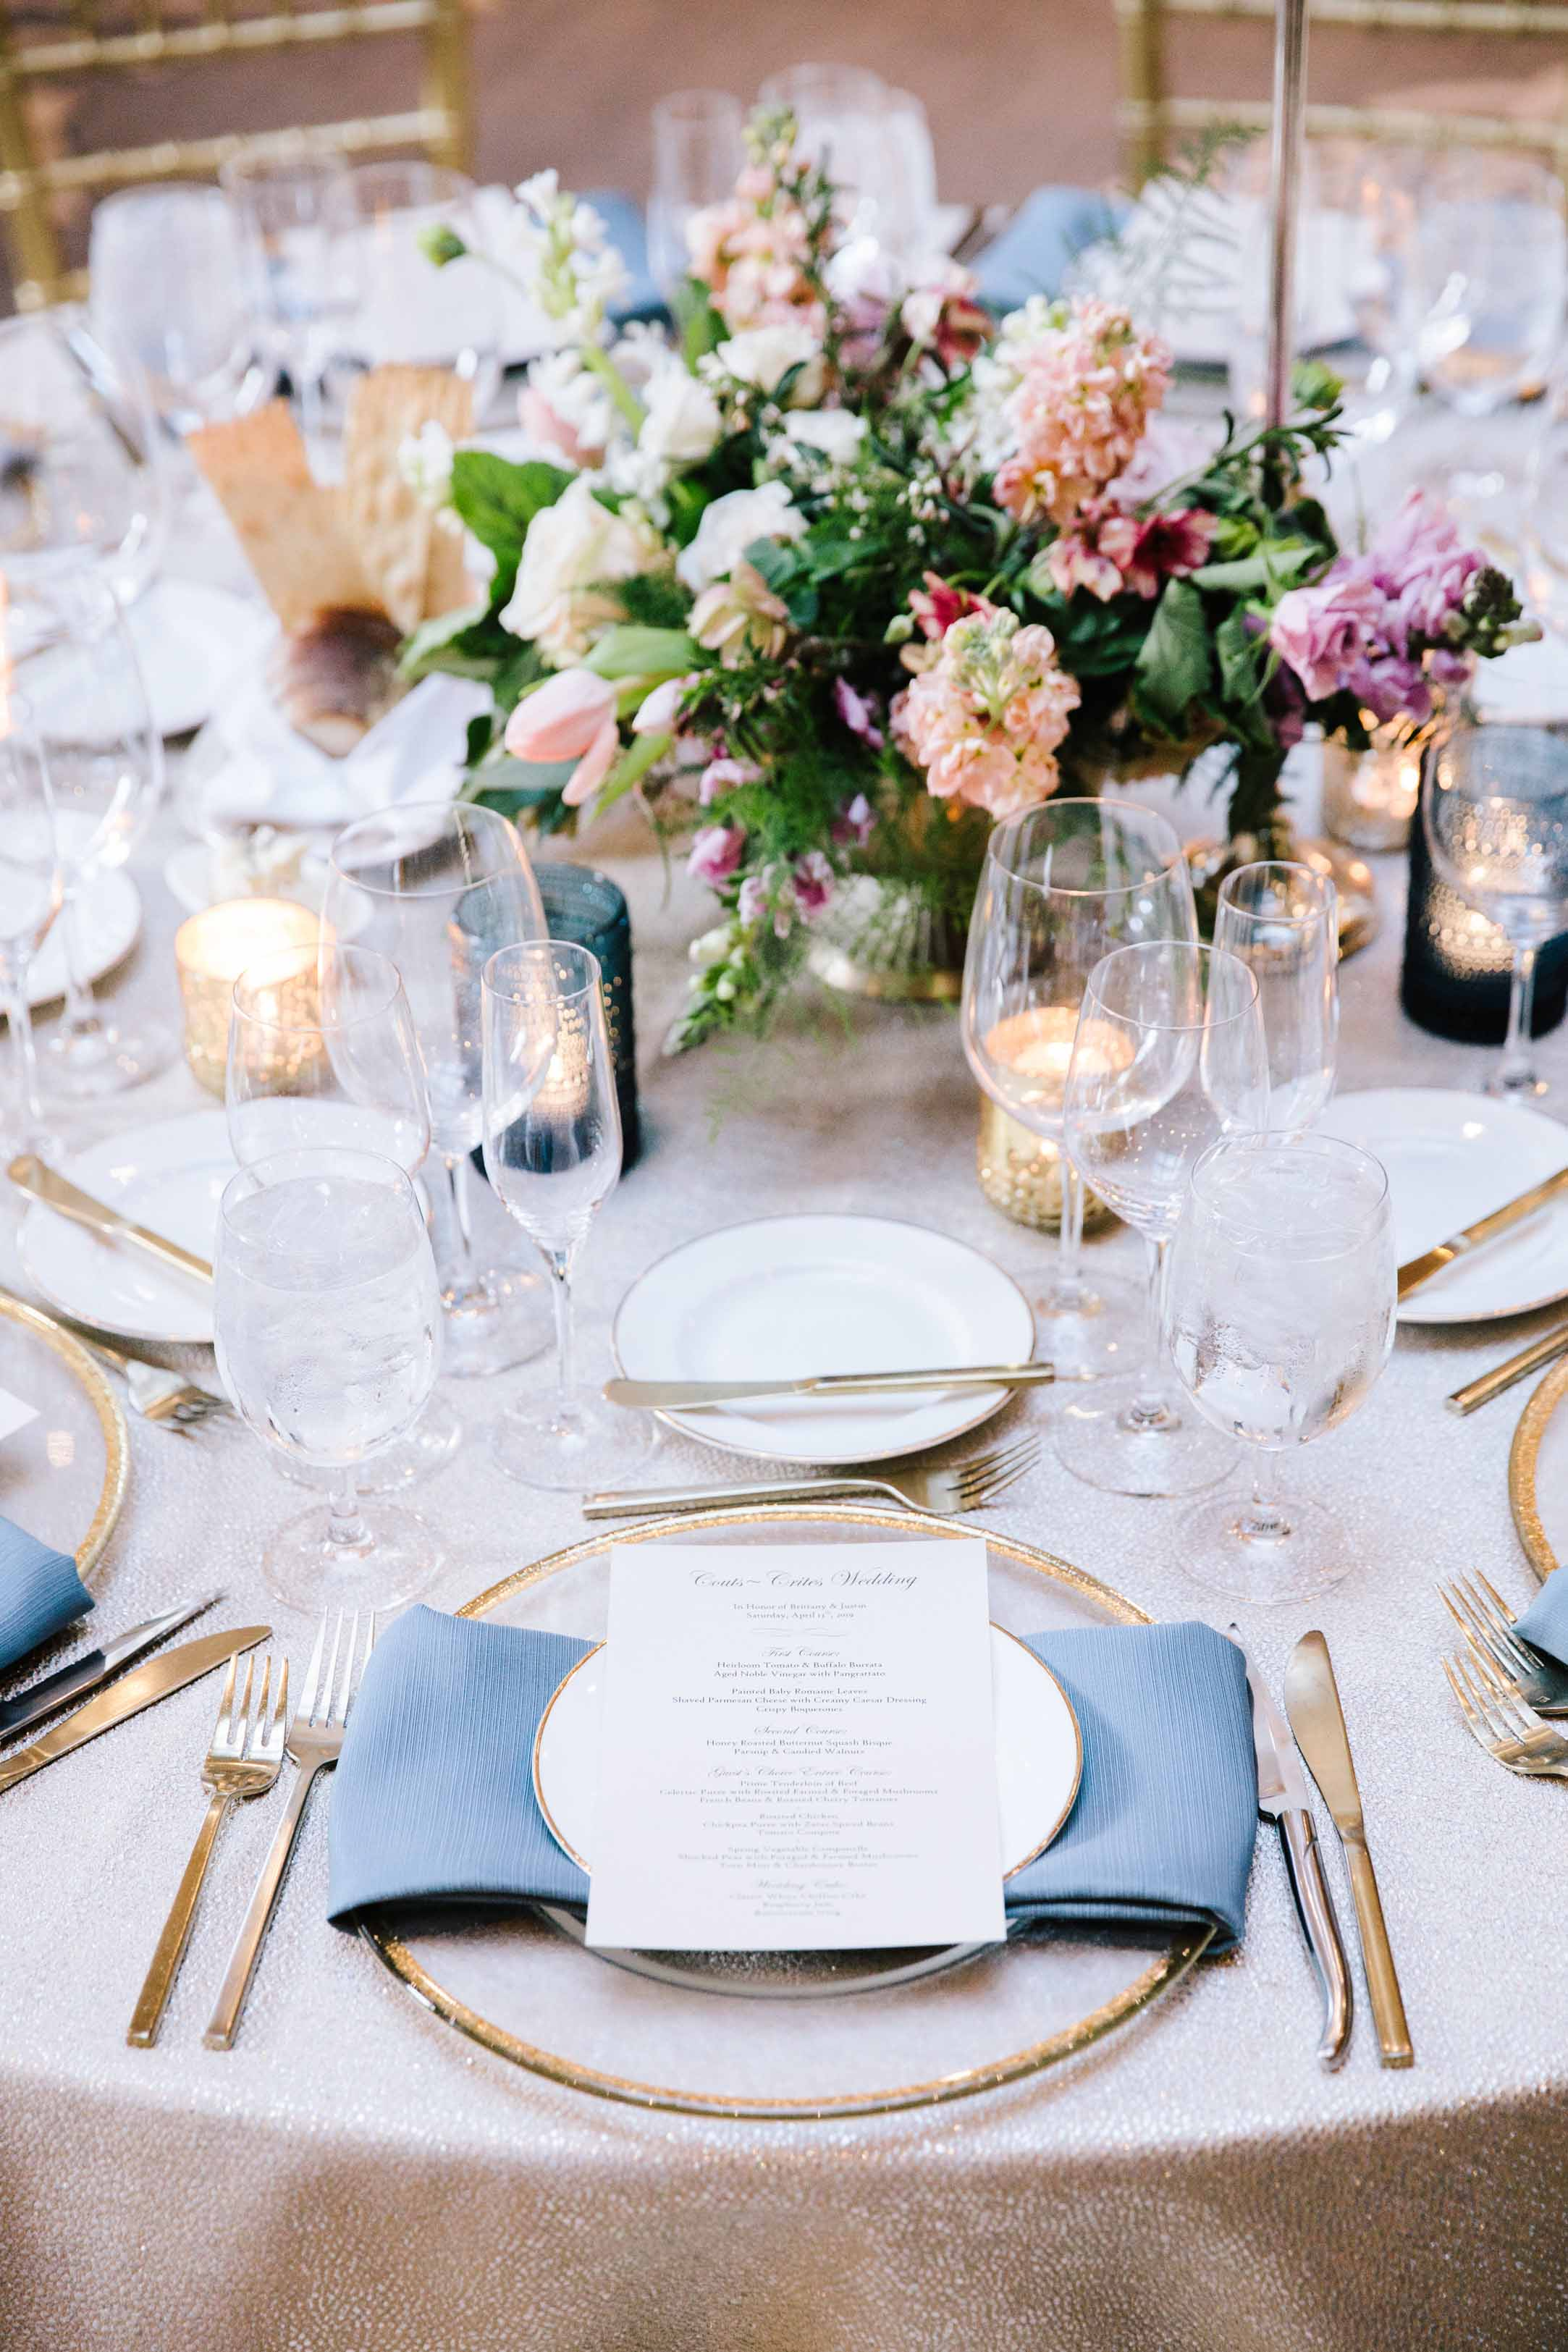 Wedding reception table set with gold flatware and chargers, blue napkins, and a gold compote filled with spring flowers in pink and cream